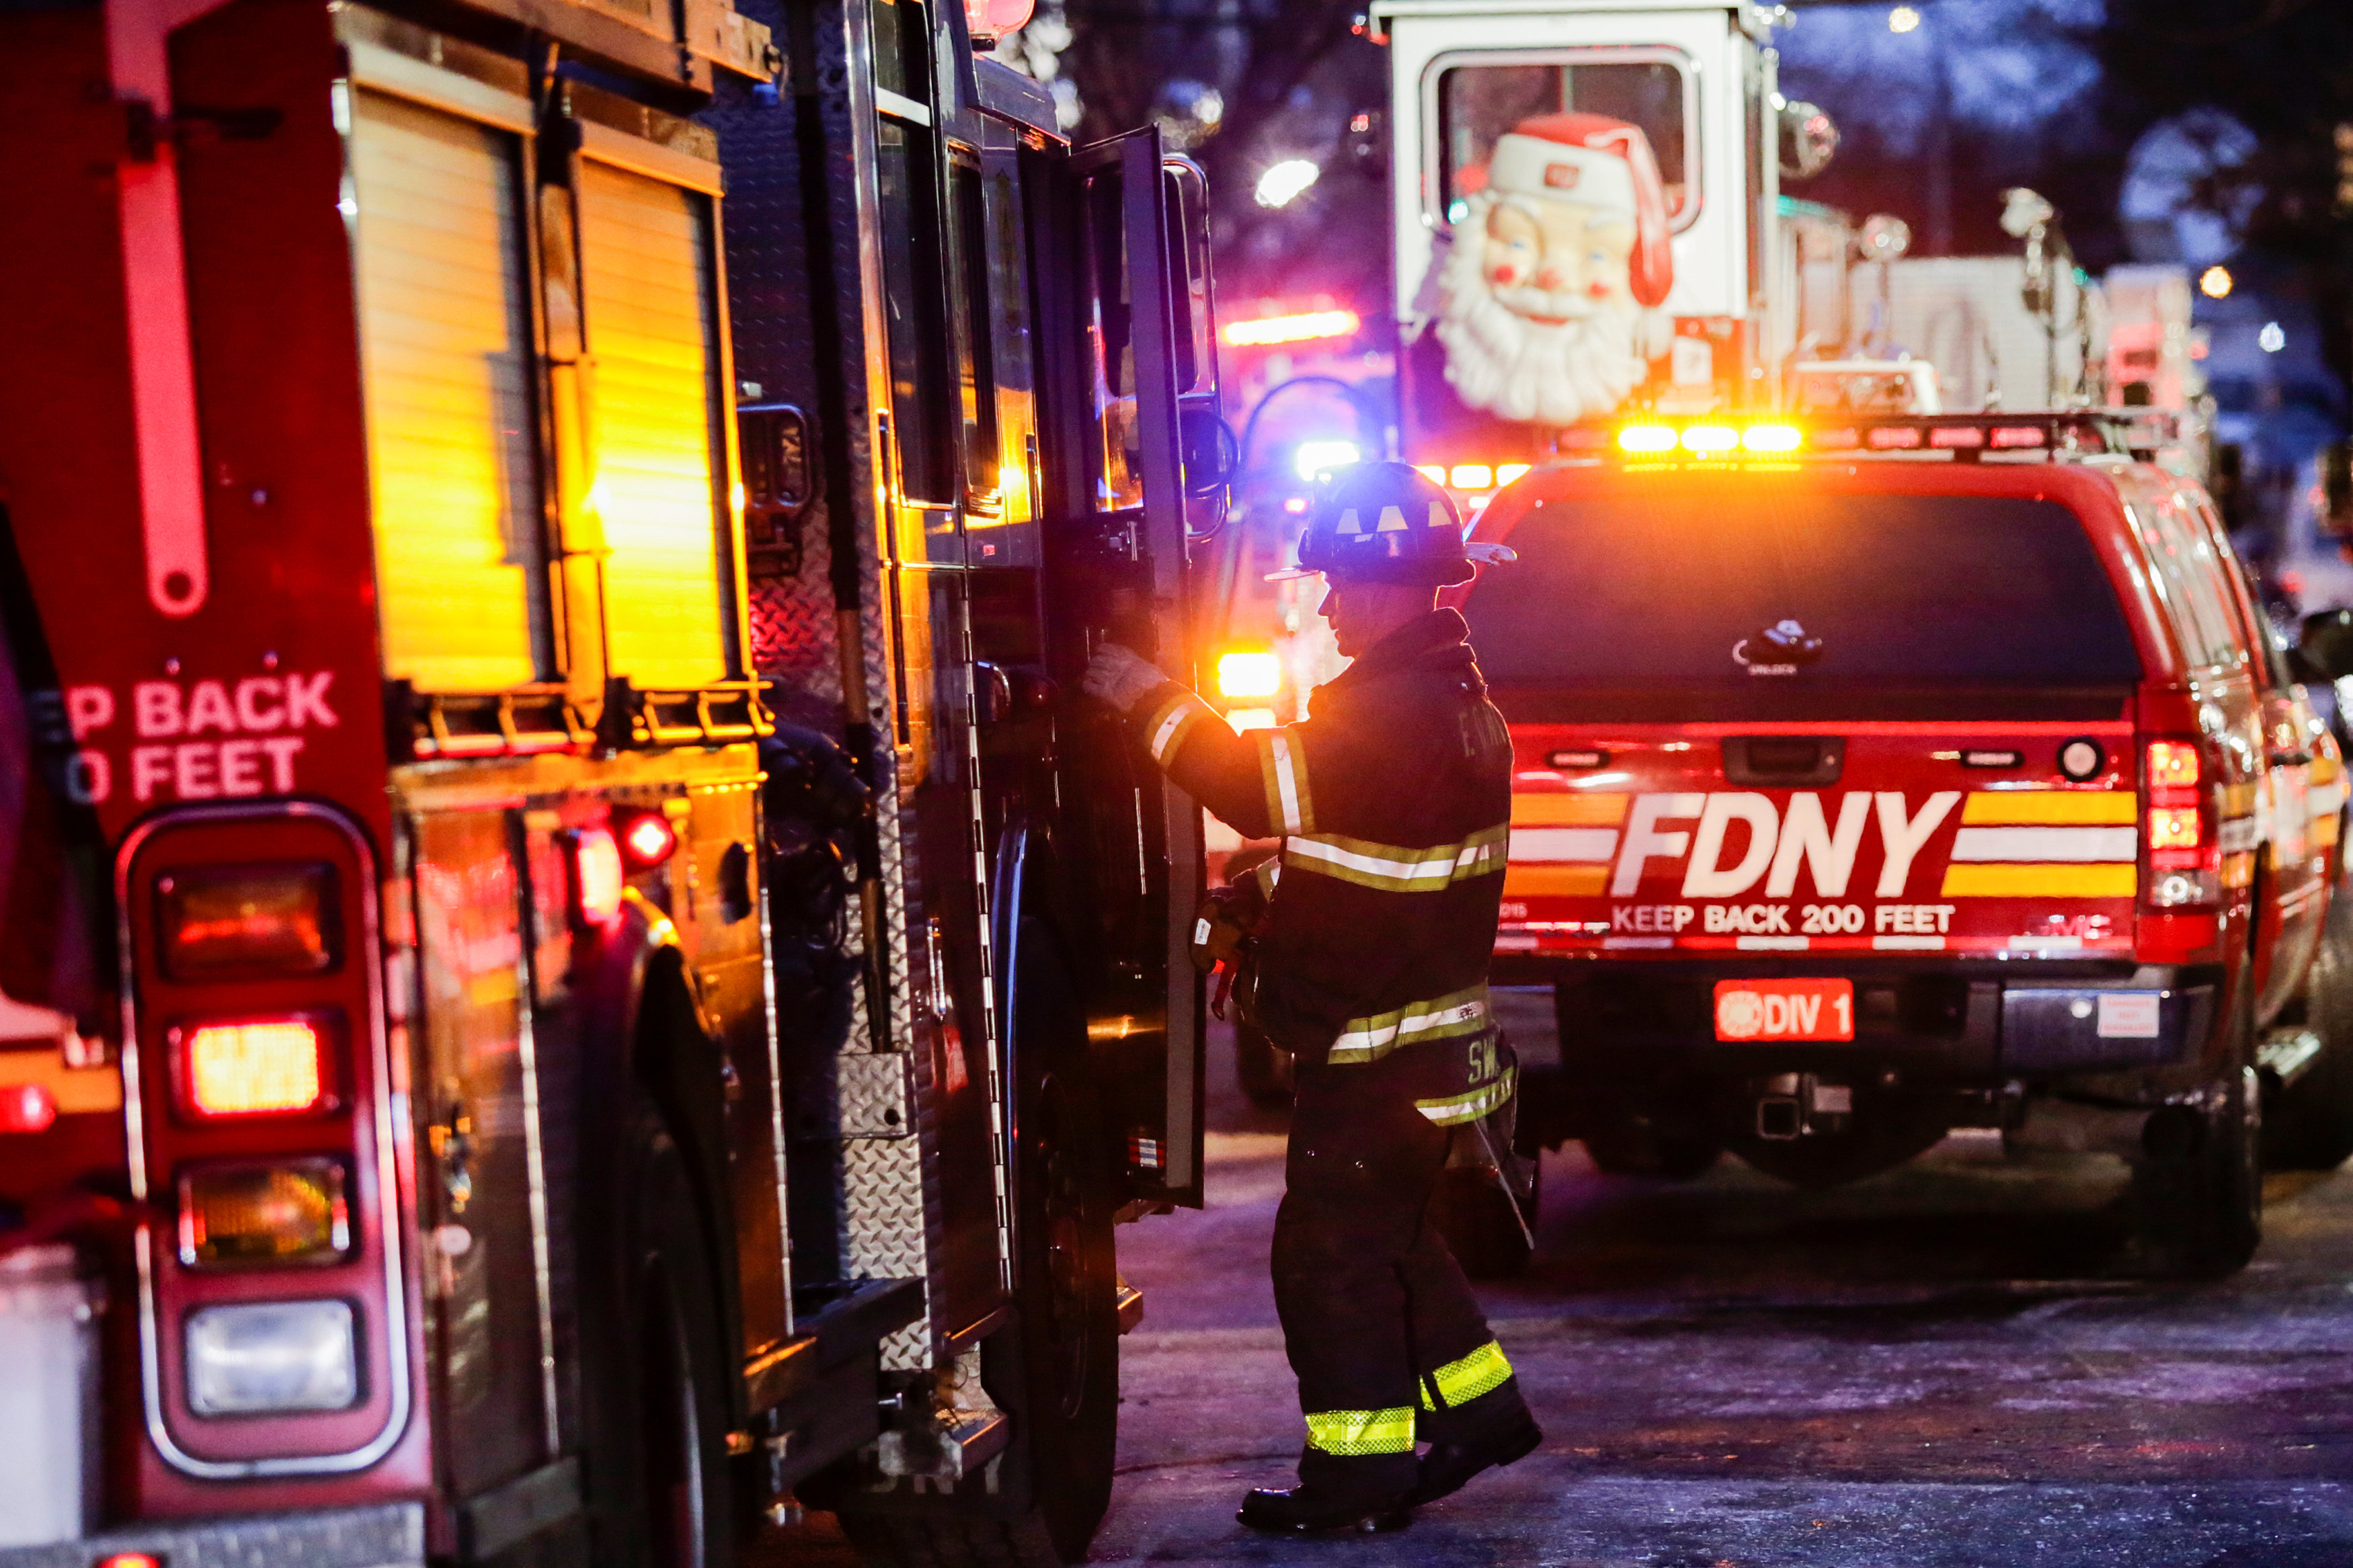 NYC fire victims include resident who rescued others